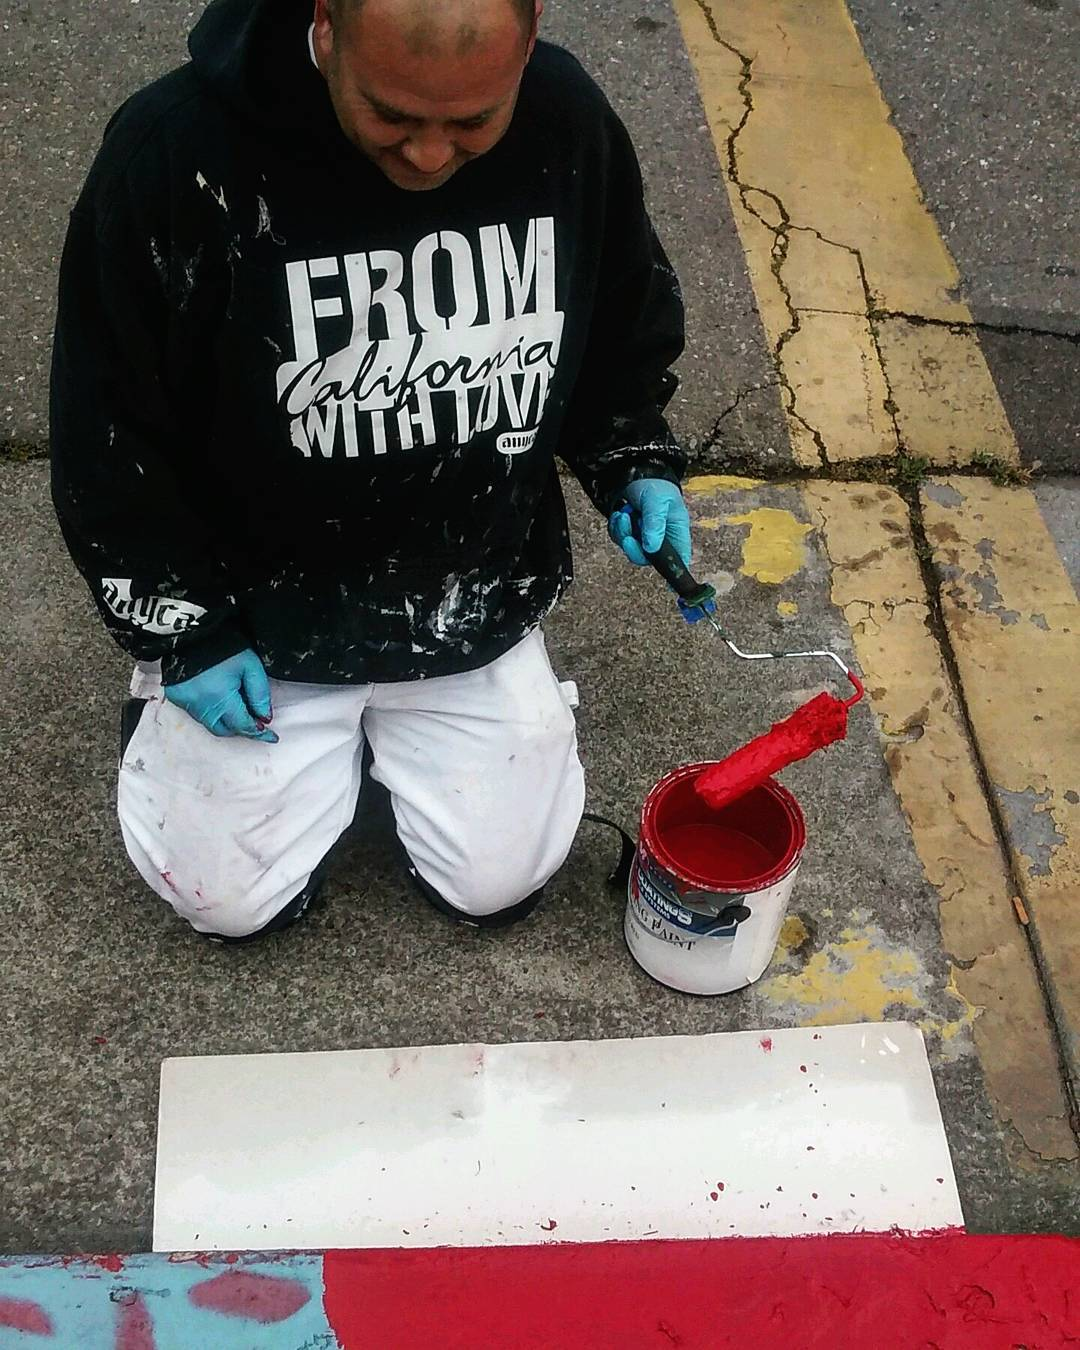 This is our local red curb painter. We love this guy!